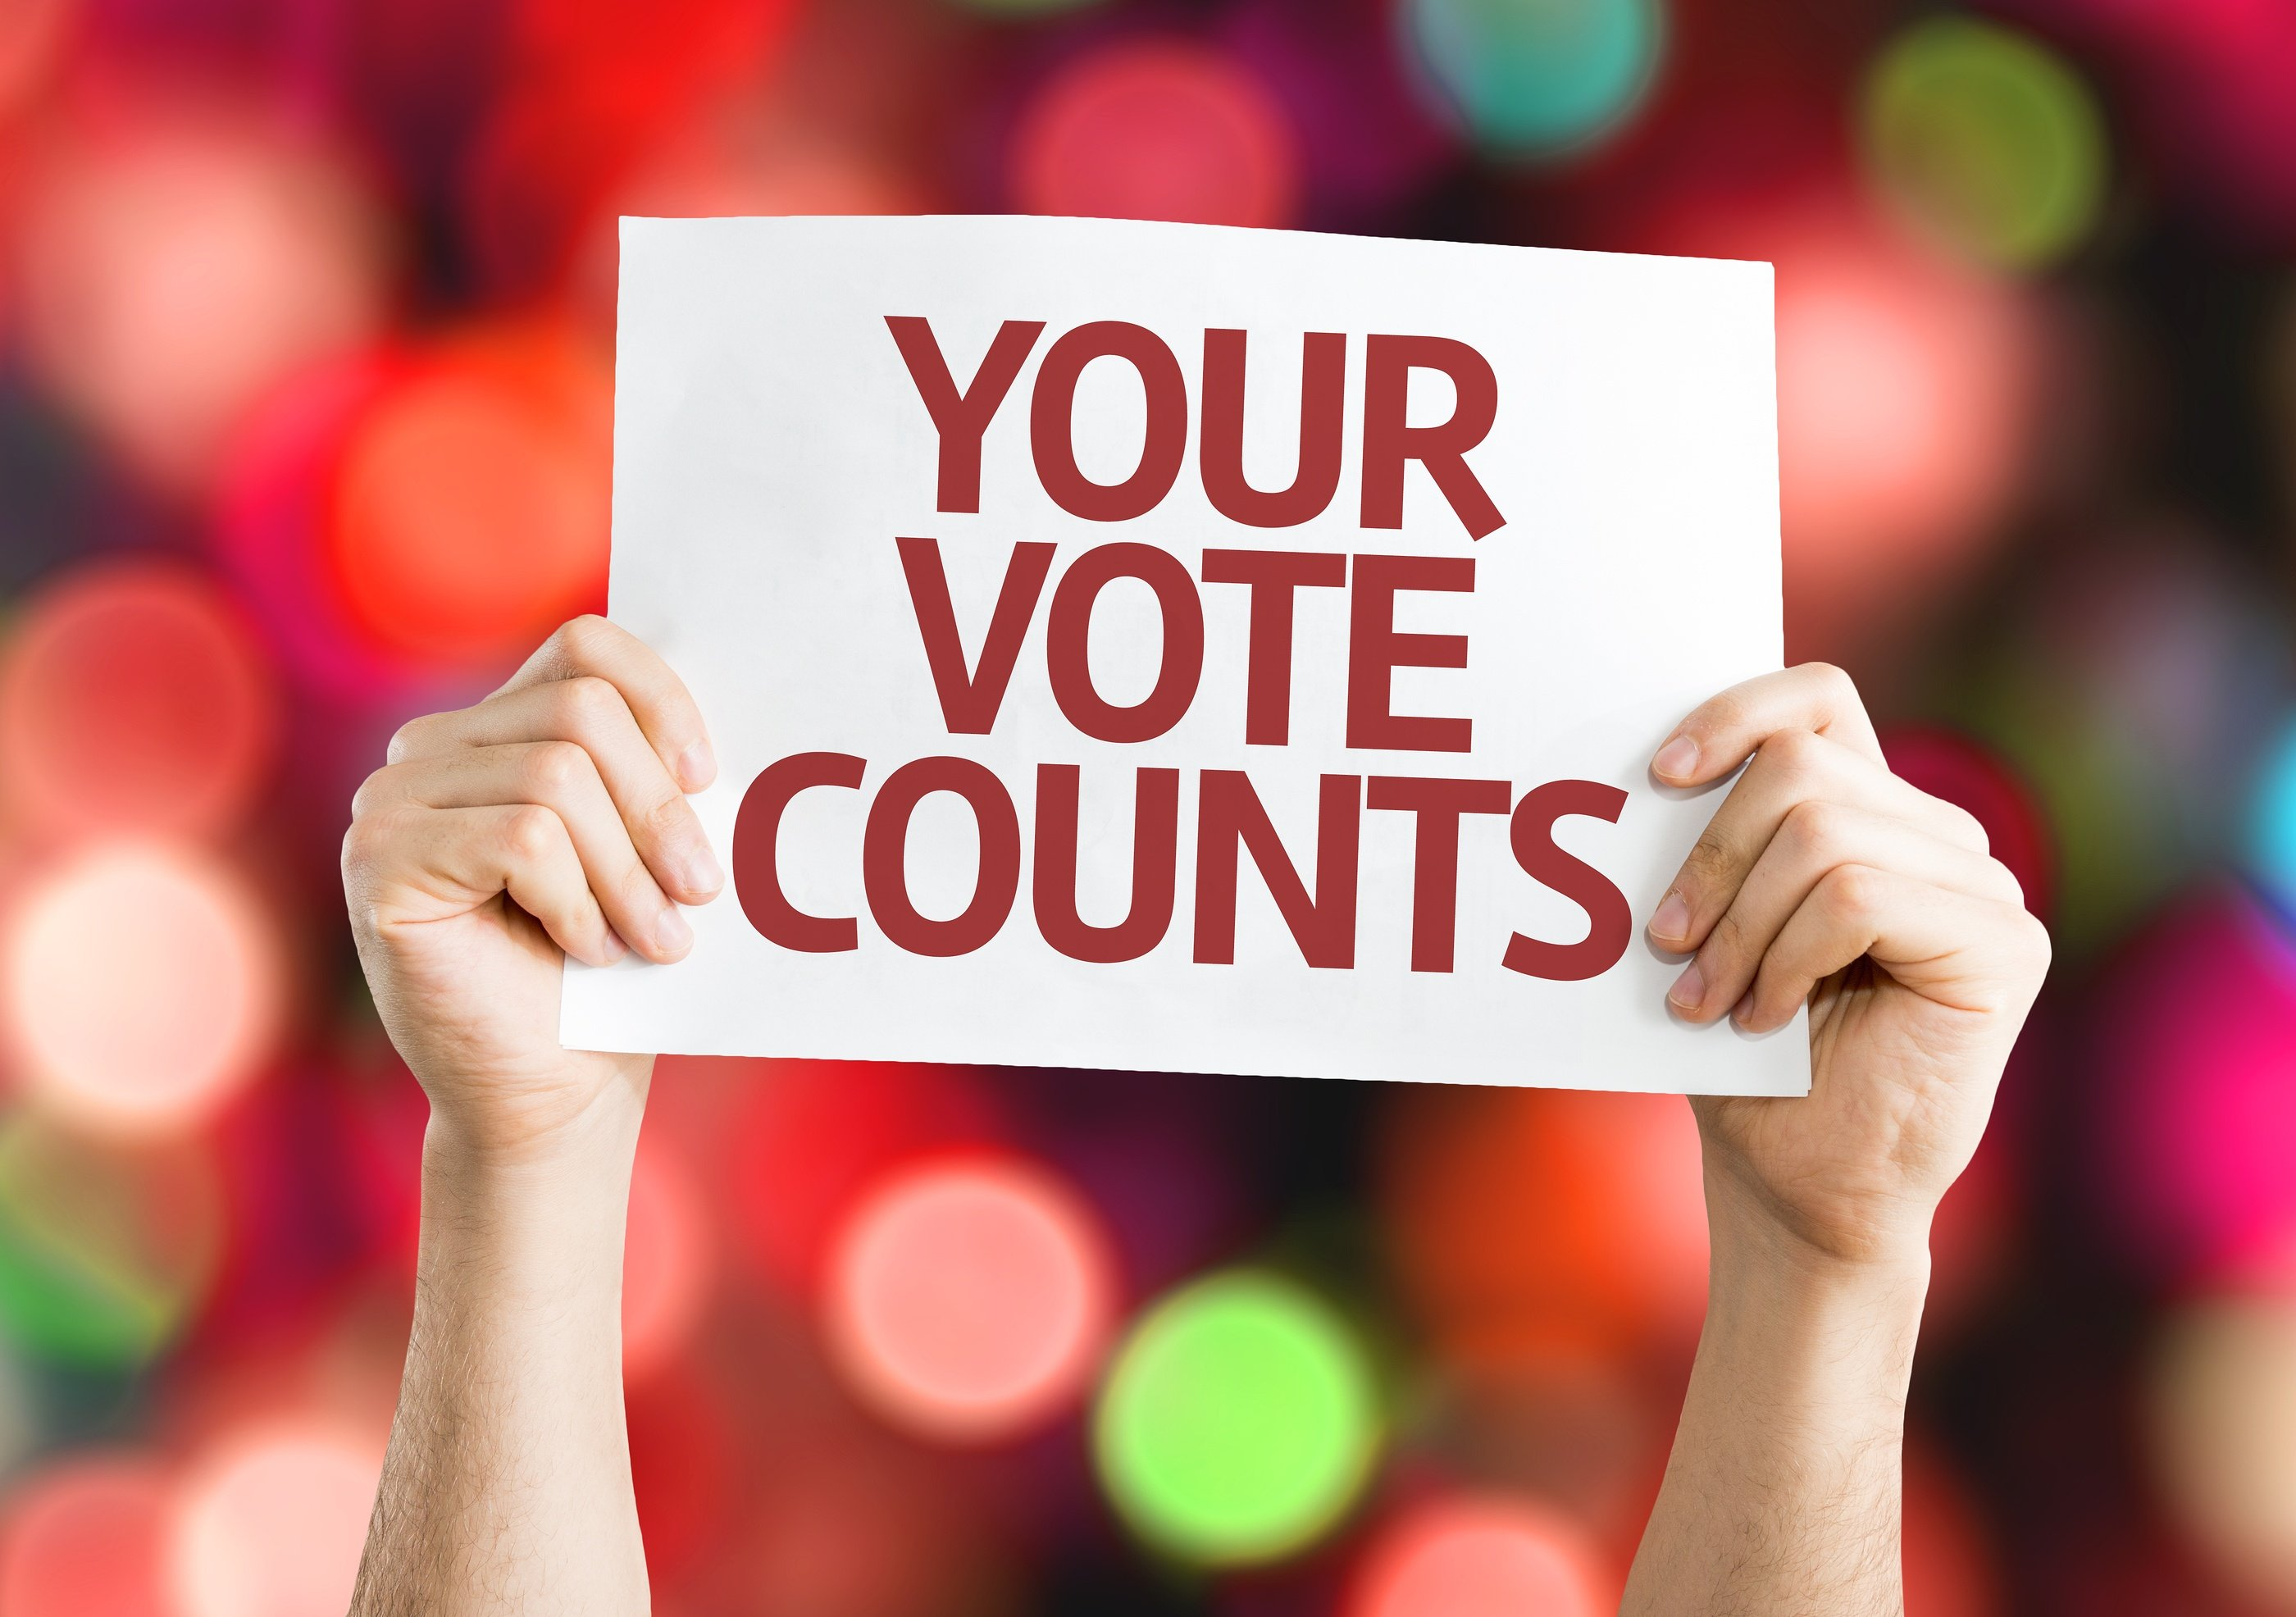 bigstock-Your-Vote-Counts-card-with-col-79710430.jpg